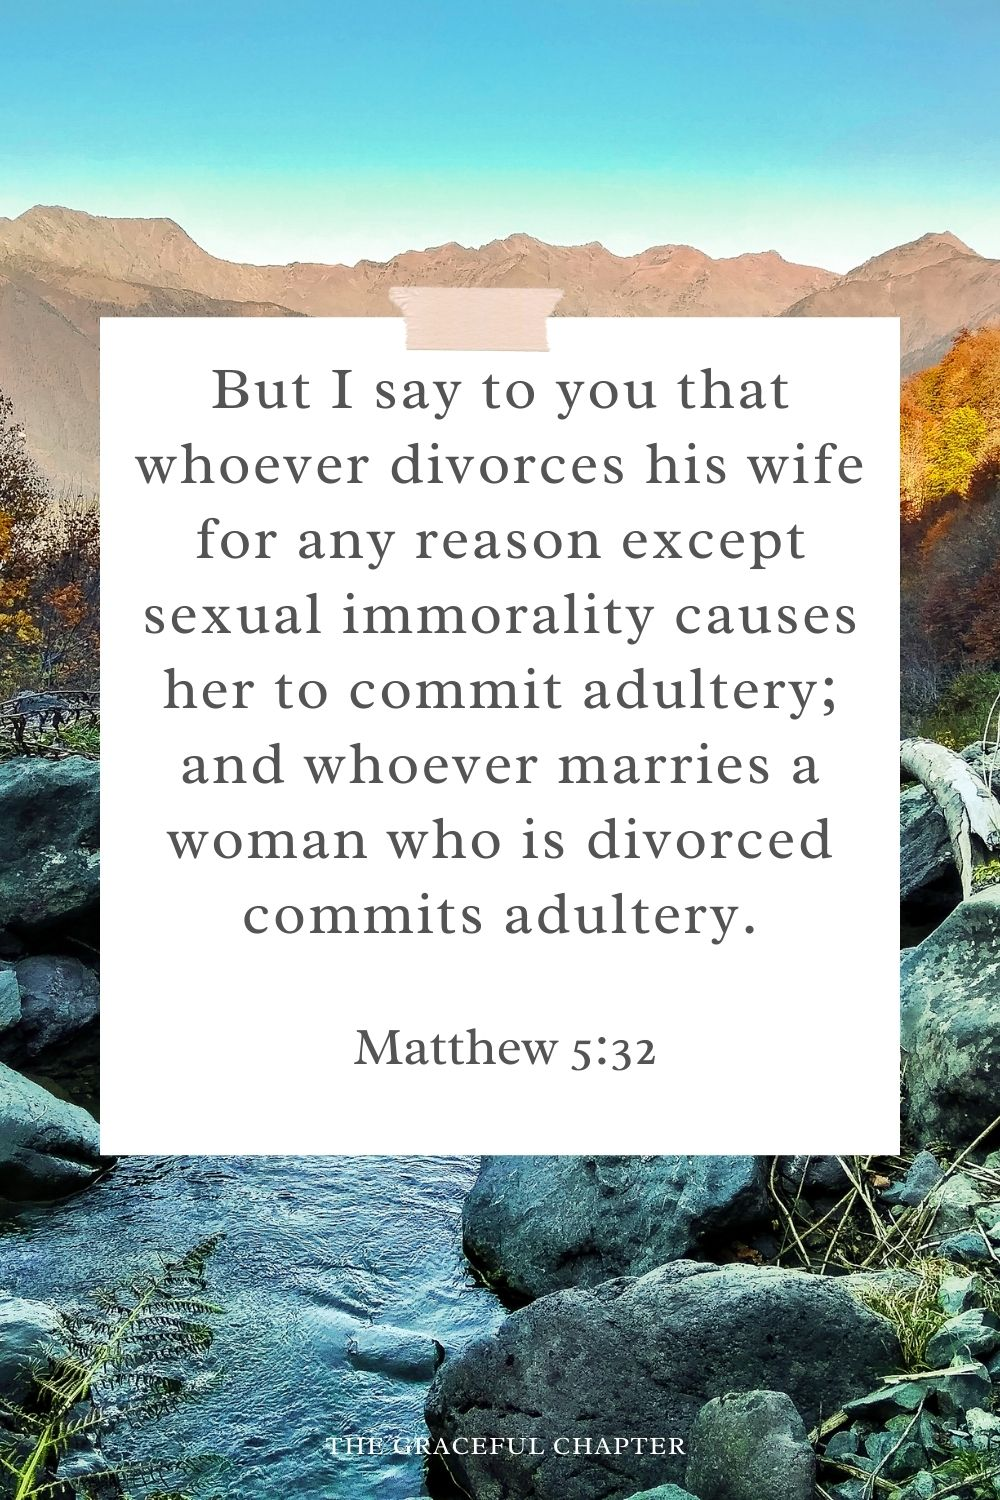 But I say to you that whoever divorces his wife for any reason except sexual immorality causes her to commit adultery; and whoever marries a woman who is divorced commits adultery. Matthew 5:32